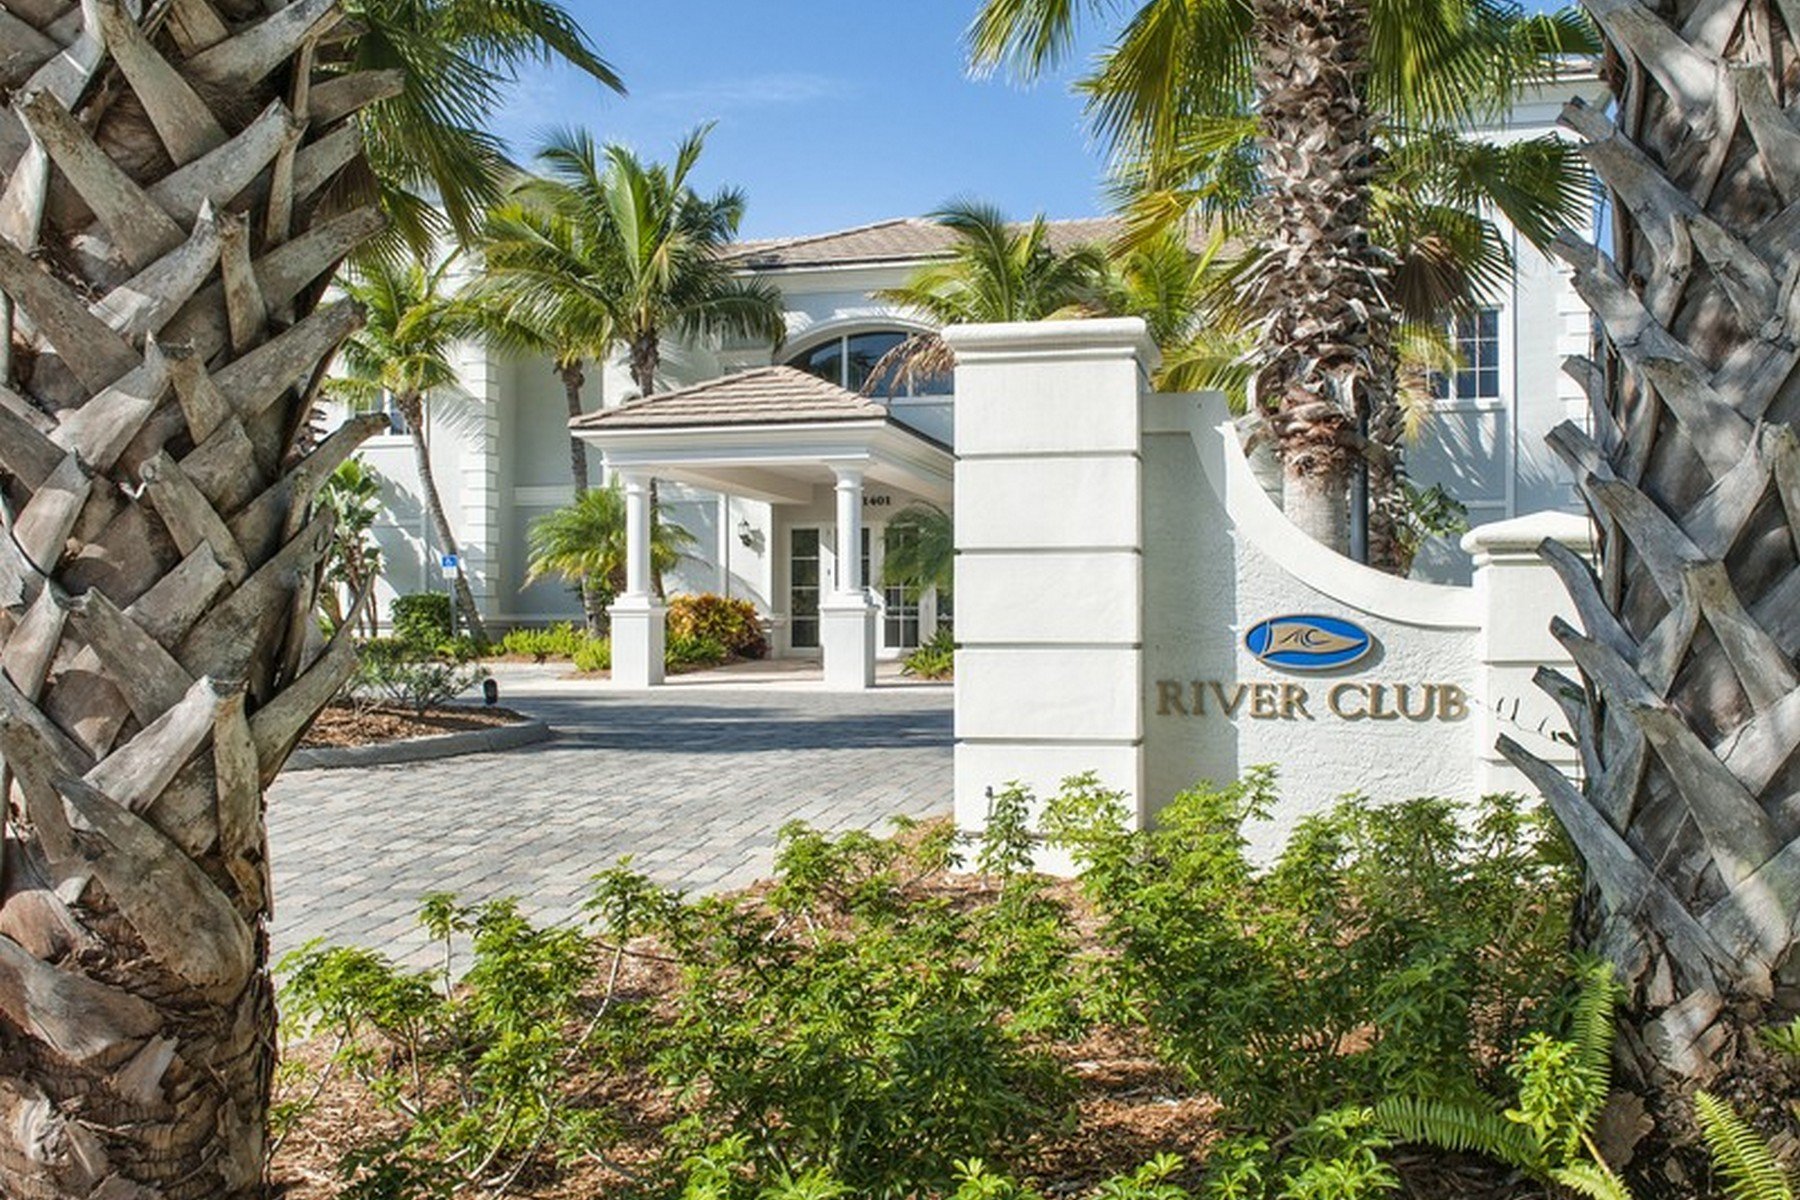 Villa per Vendita alle ore Sophisticated To Be Built Home in River Club 1413 Old Winter Beach Rd Vero Beach, Florida, 32963 Stati Uniti